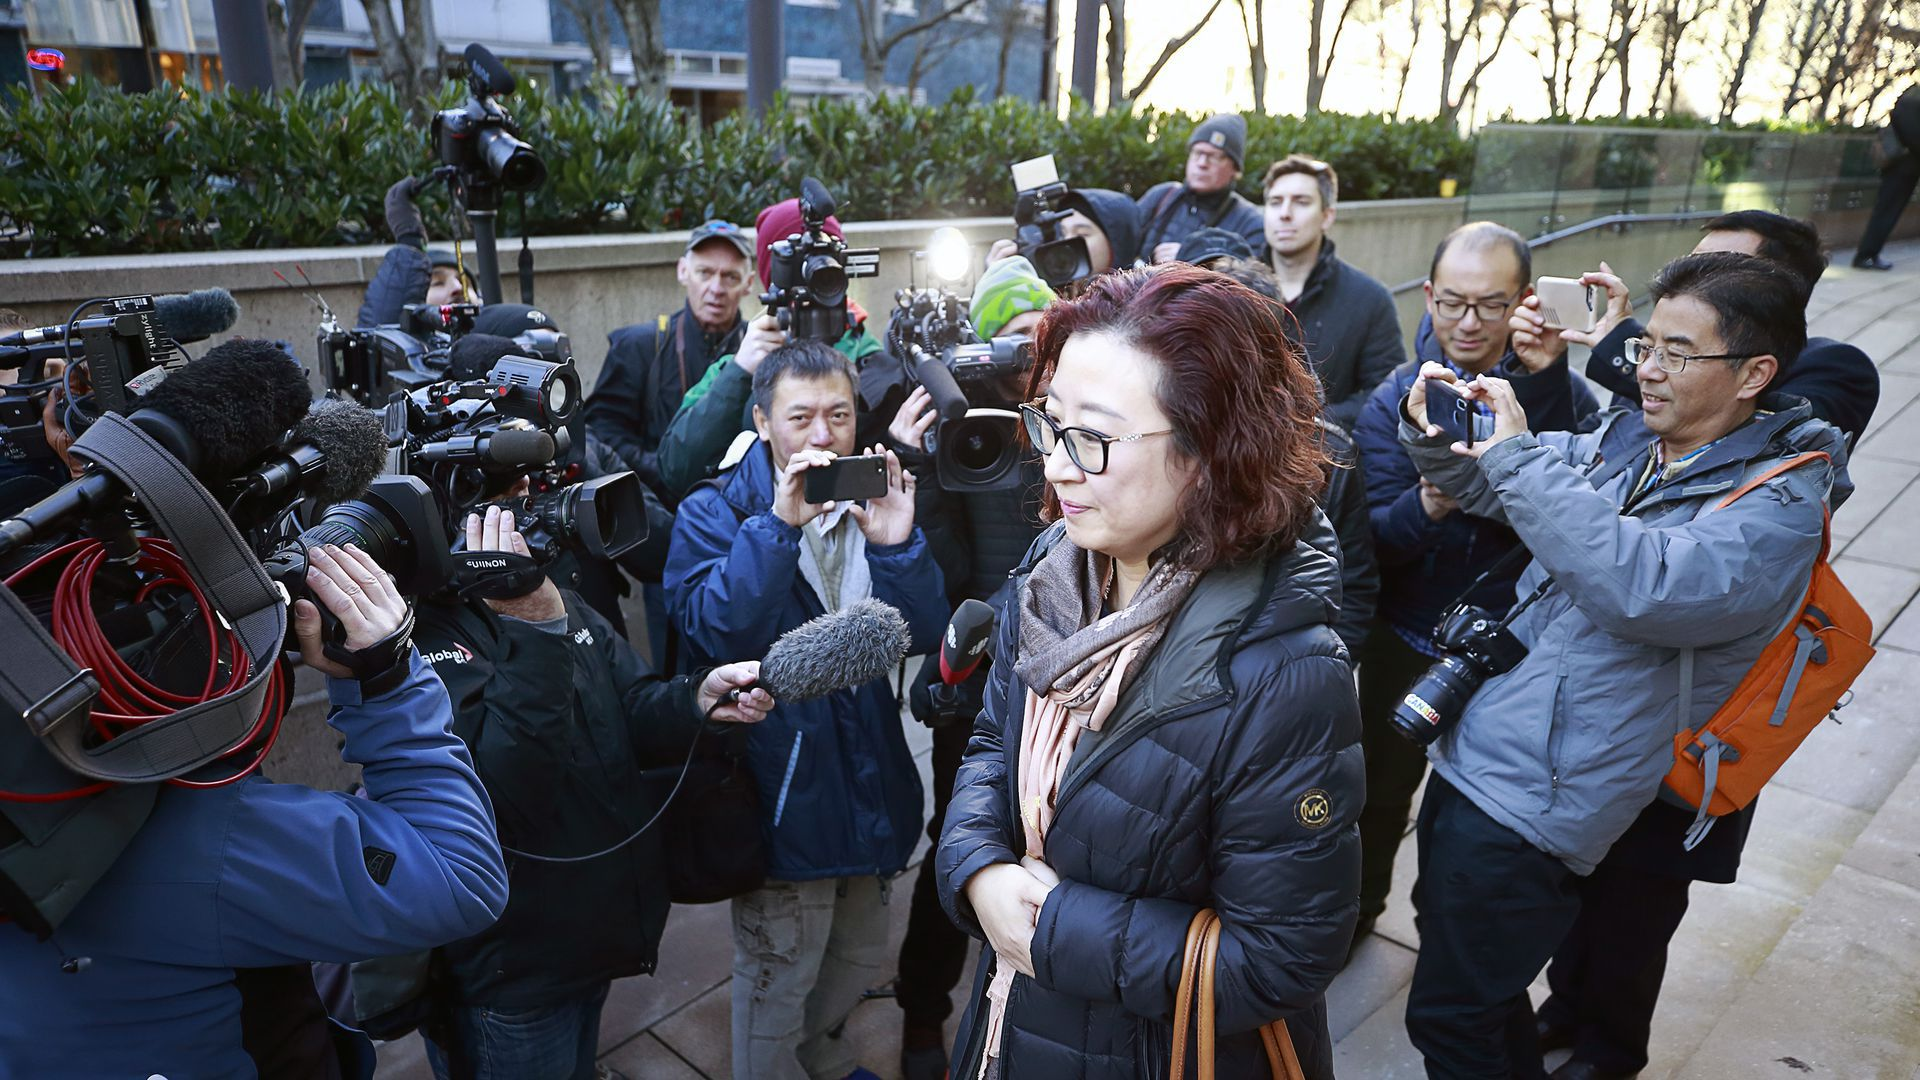 Huawei Technologies Chief Financial Officer Meng Wanzhou Attends Bail Hearing After Arrest In Vancouver